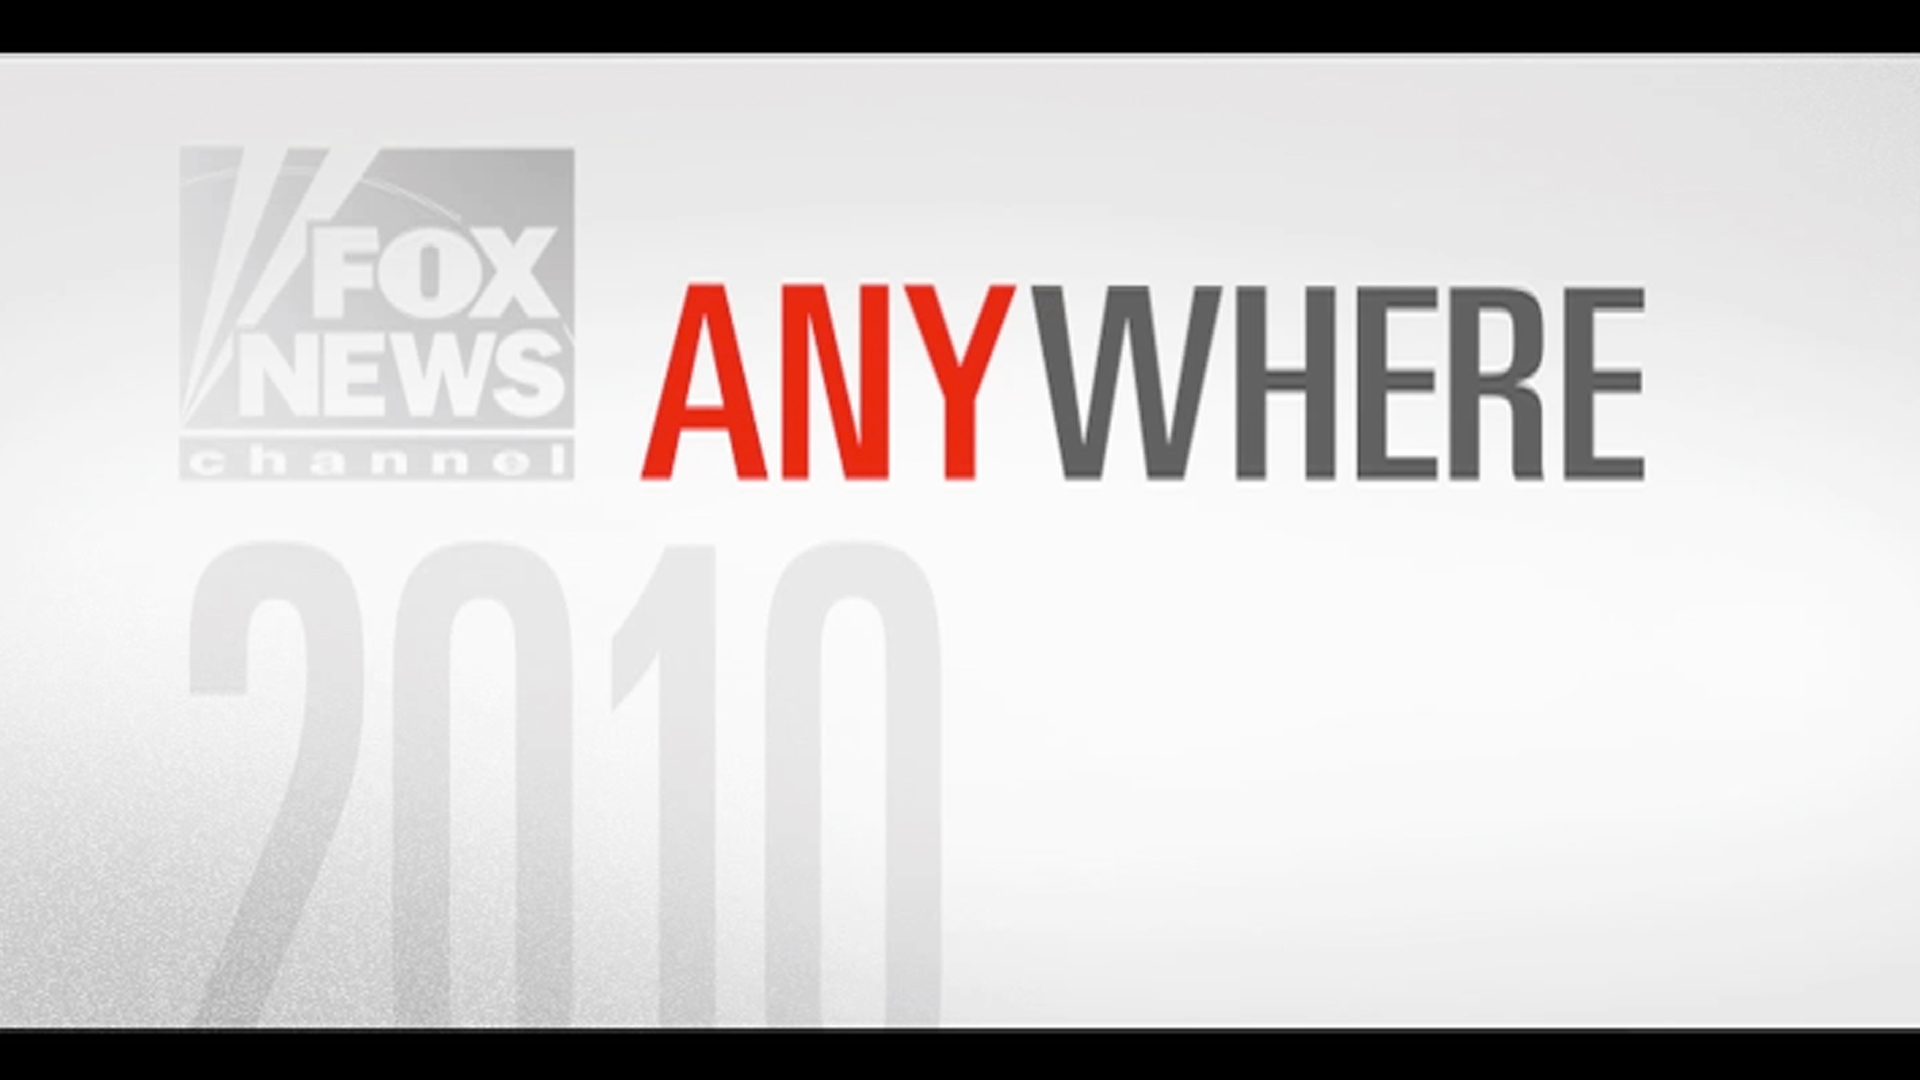 National Television Commercial - We're Everywhere Political Campaign. Fox News Channel 2010.